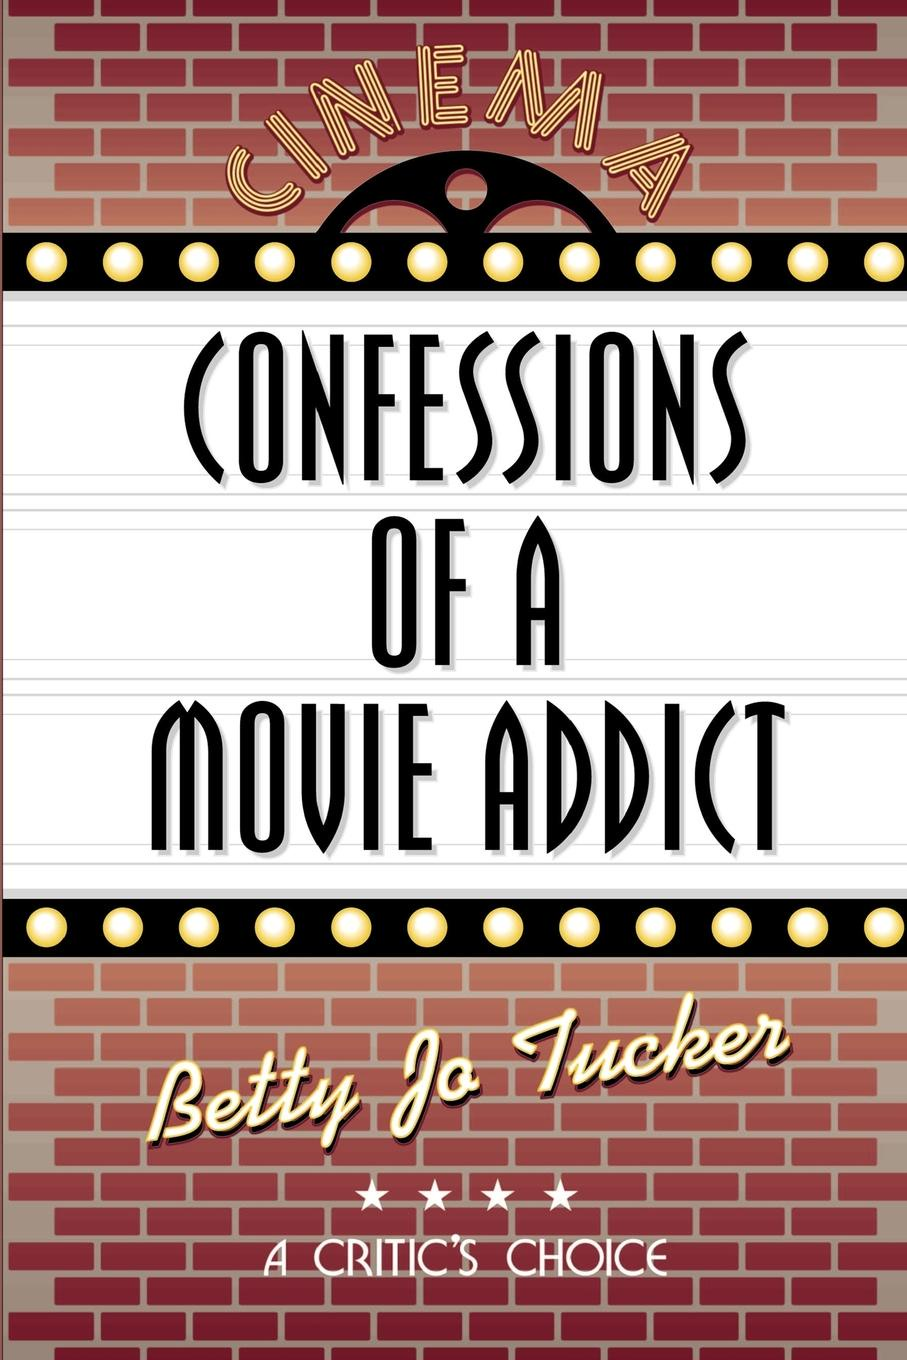 Betty Jo Tucker Confessions of a Movie Addict a movie and a book